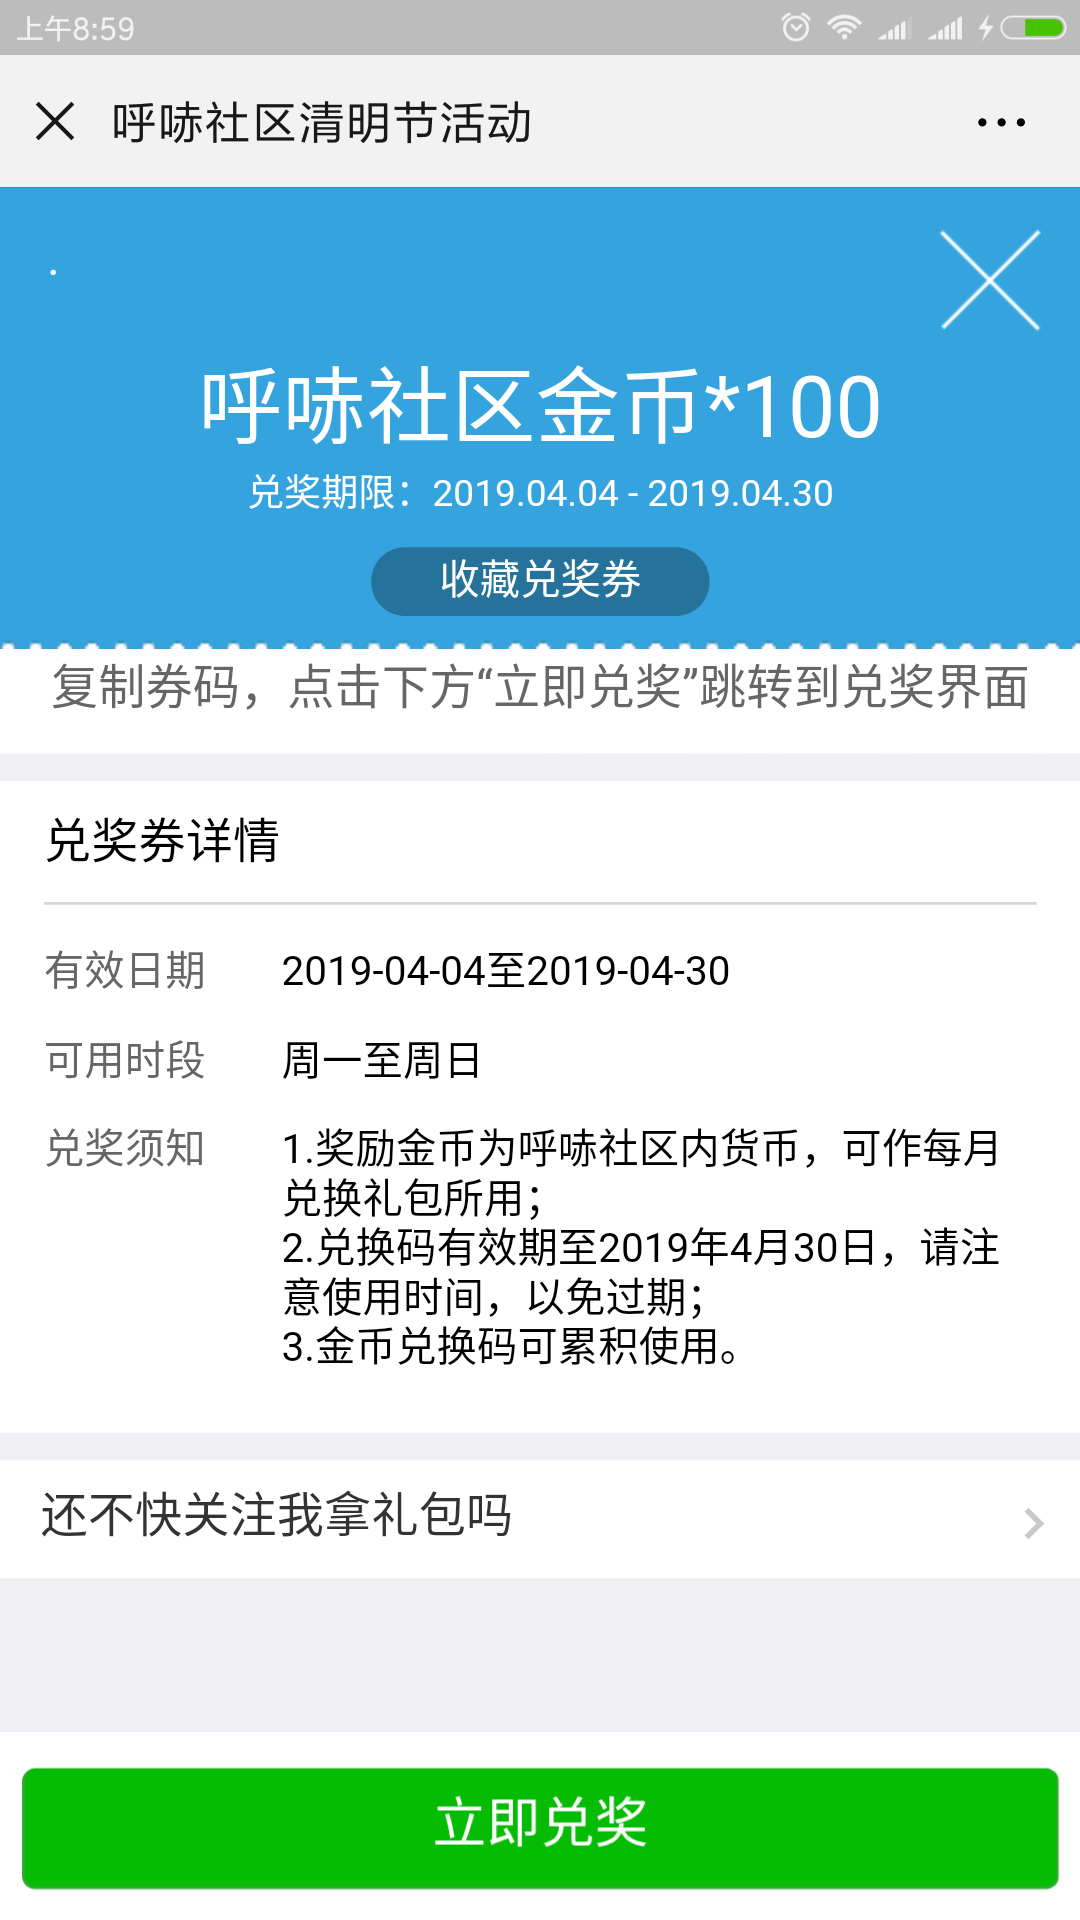 Screenshot_2019-04-05-08-59-51-477_com.tencent.mm.png